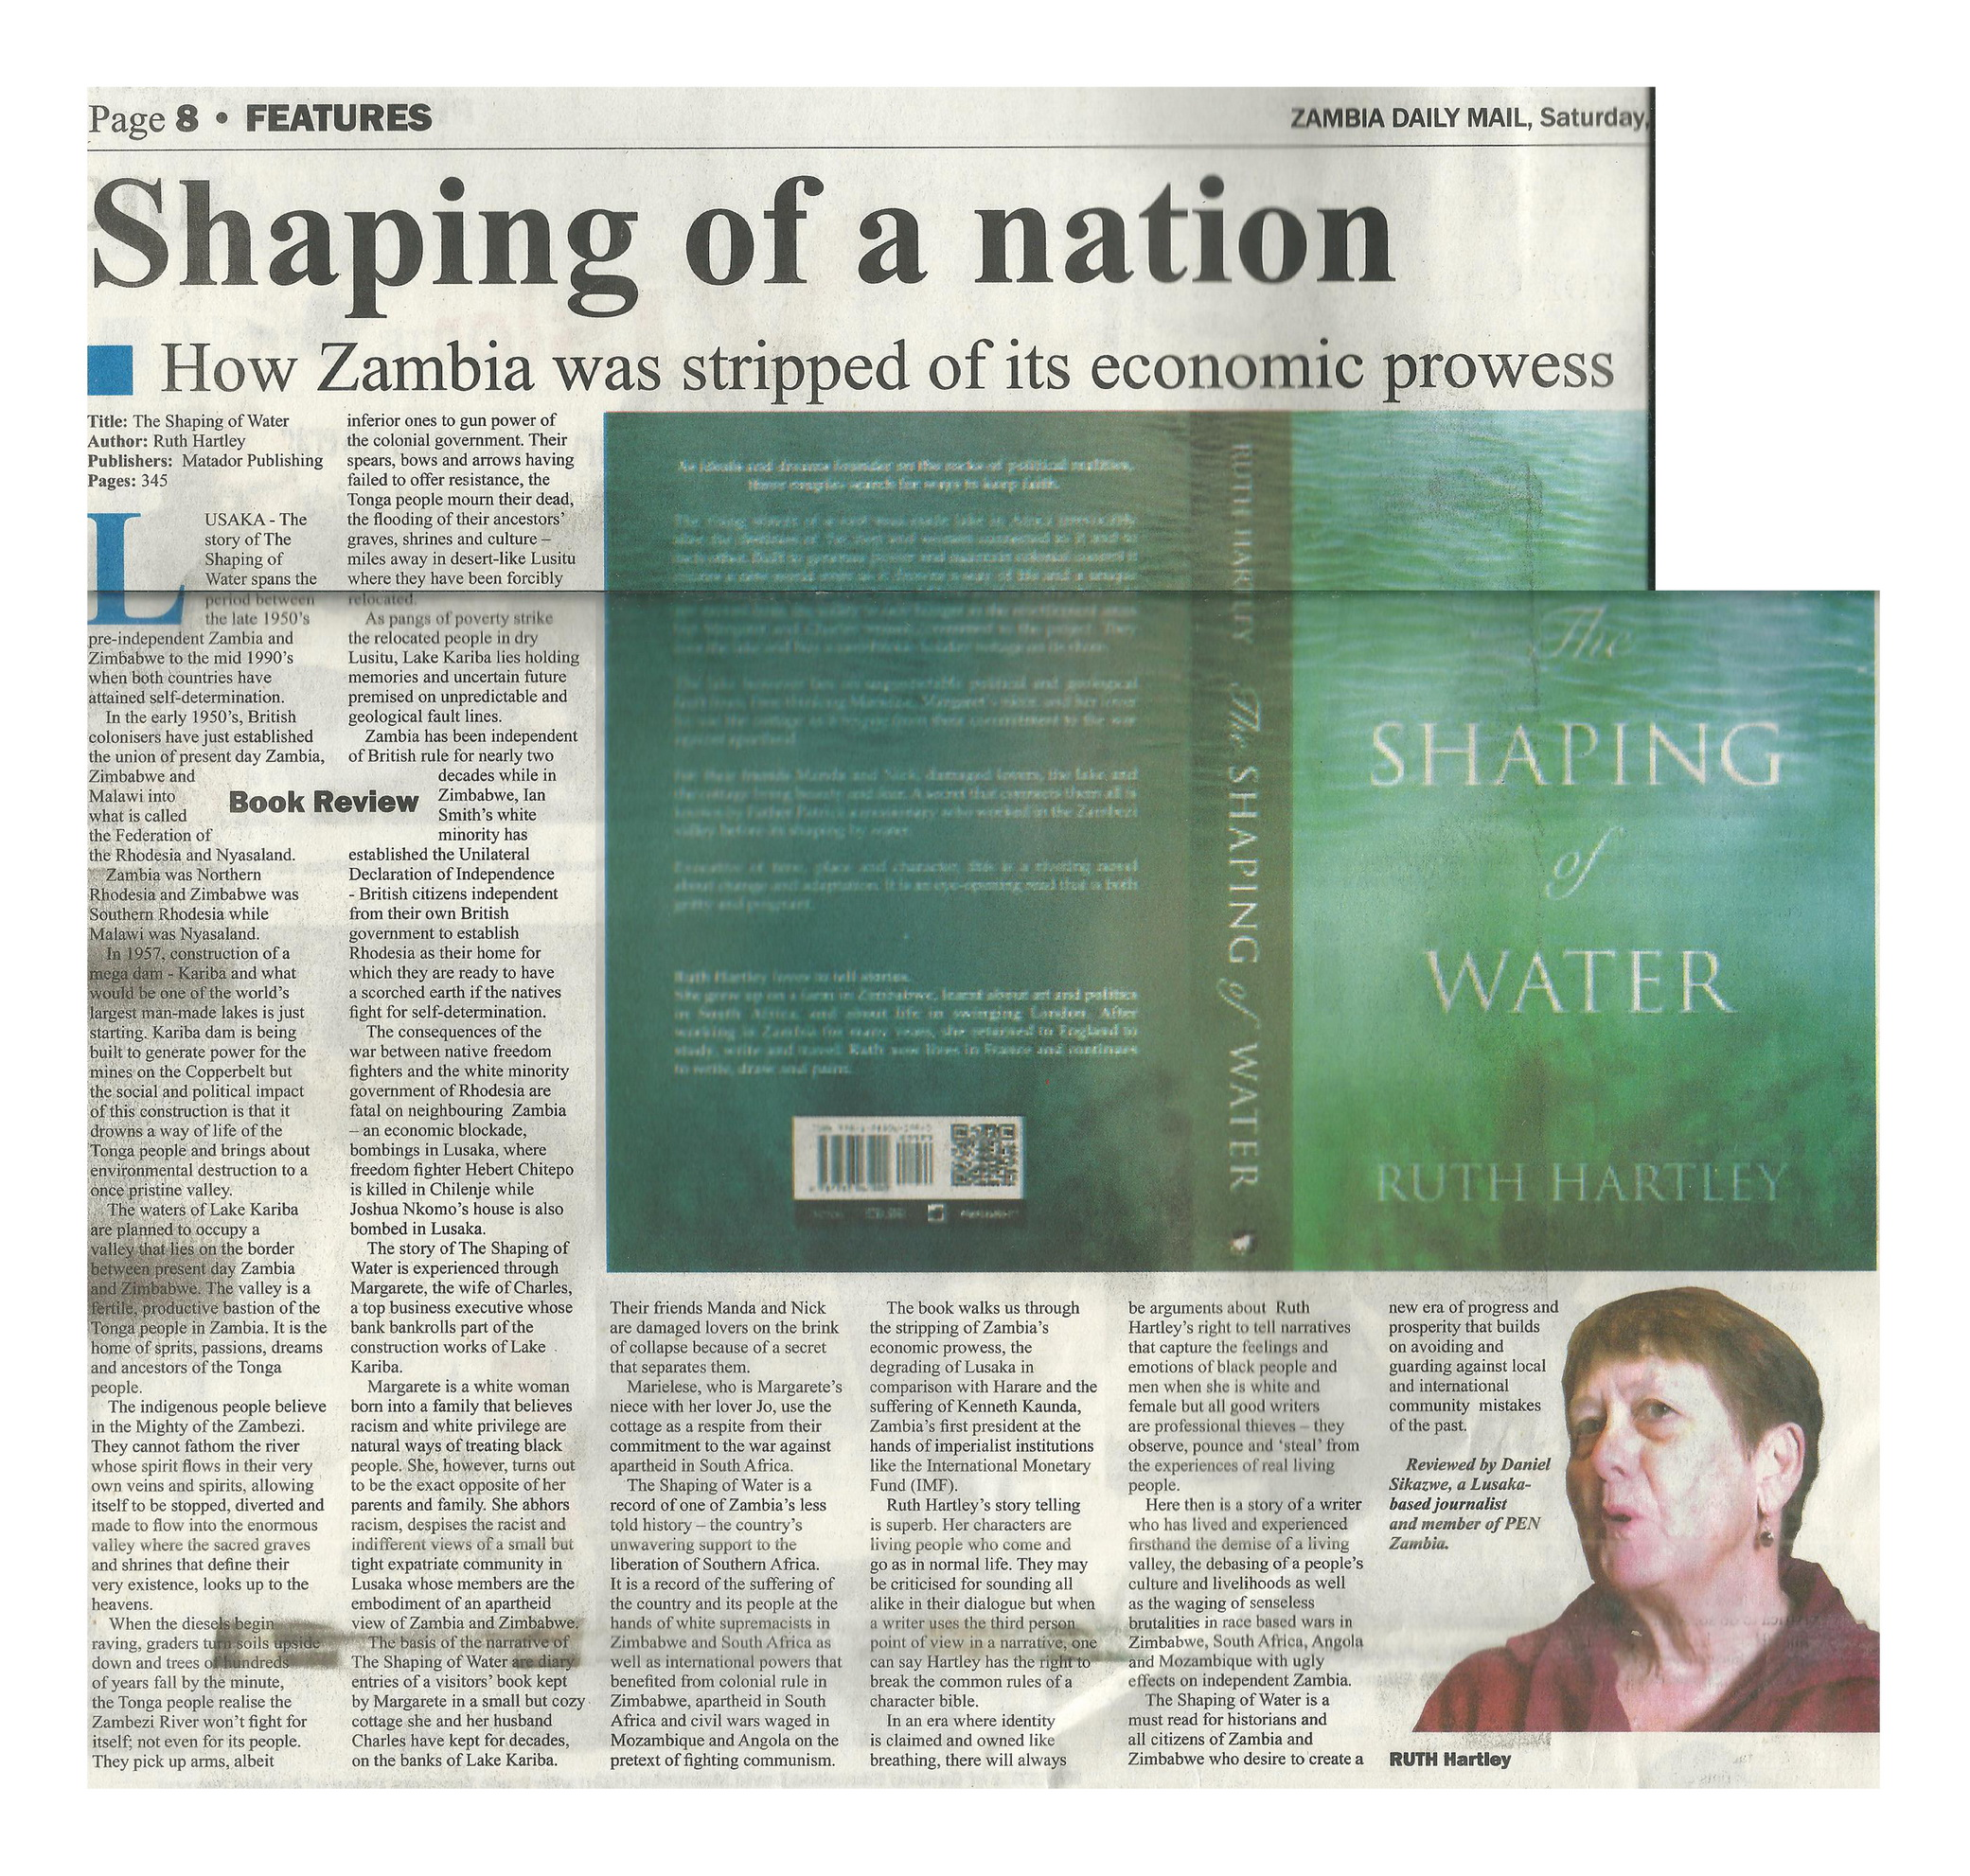 Scan of the review by Daniel Sikazwe in the Zambia Daily Mail of the The Shaping Of Water including a picture of the book cover with white text on an aqua background.